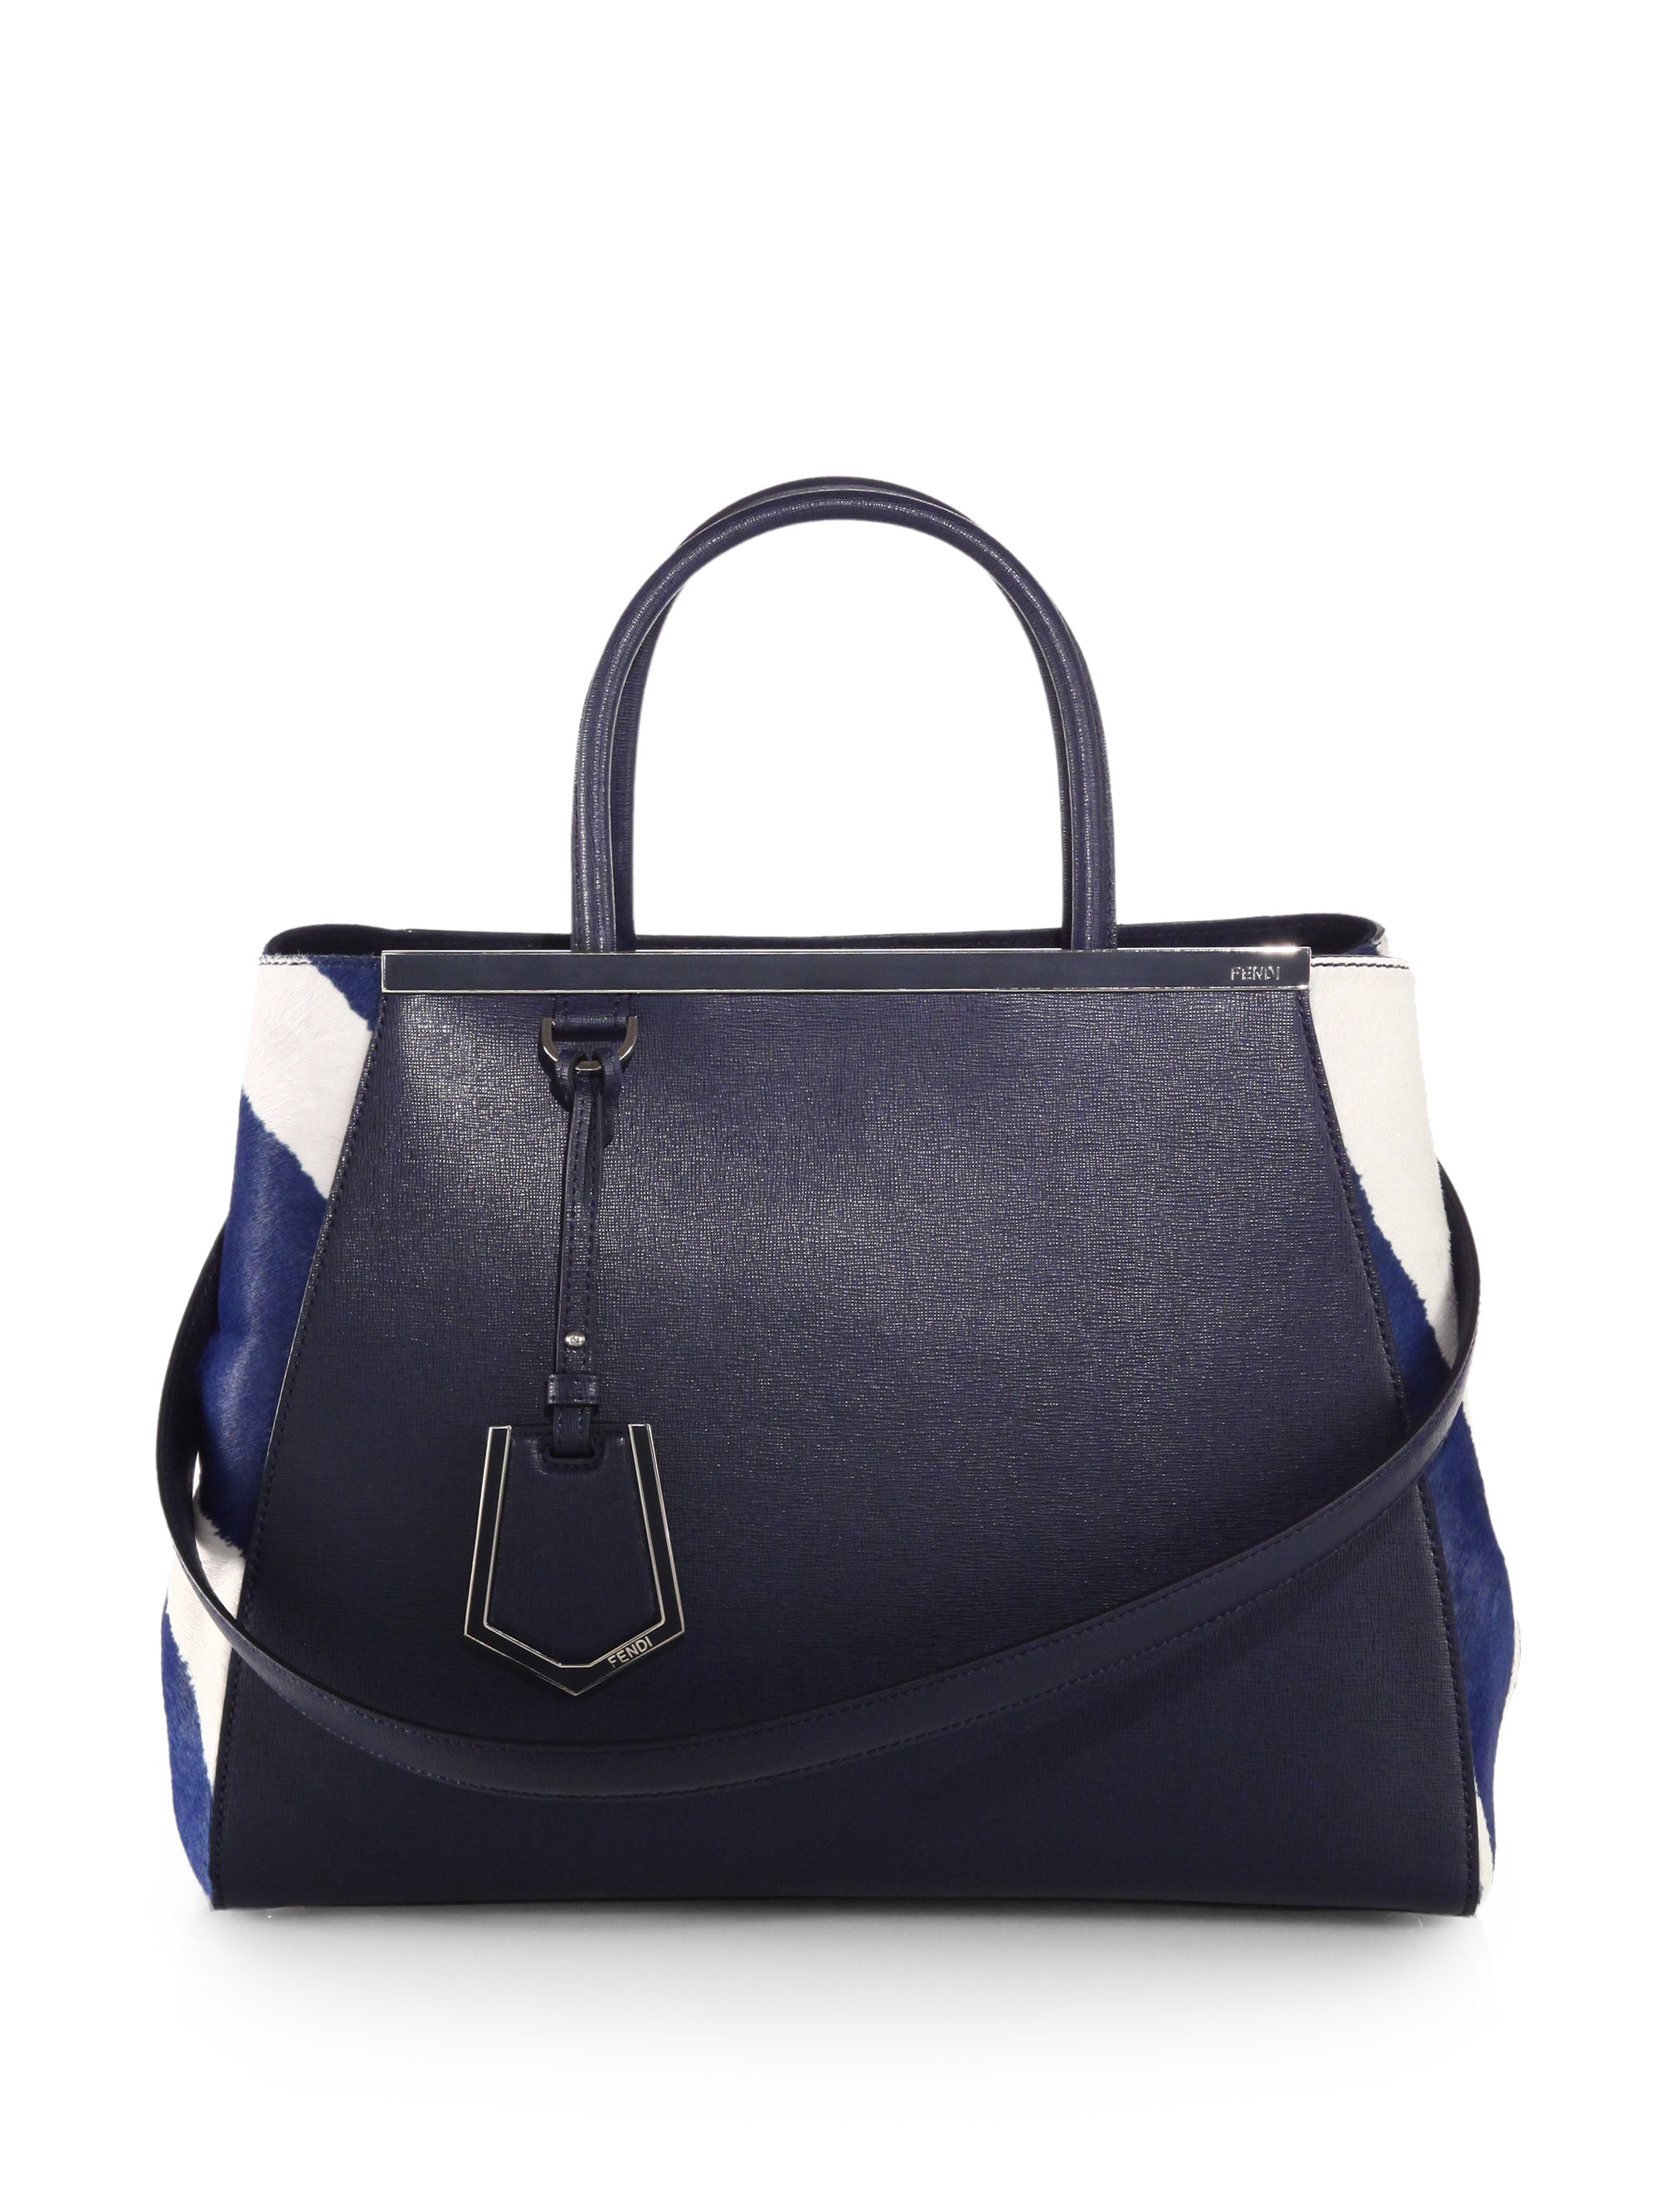 4fbb1840a502 Gallery. Previously sold at  Saks Fifth Avenue · Women s Fendi 2jours